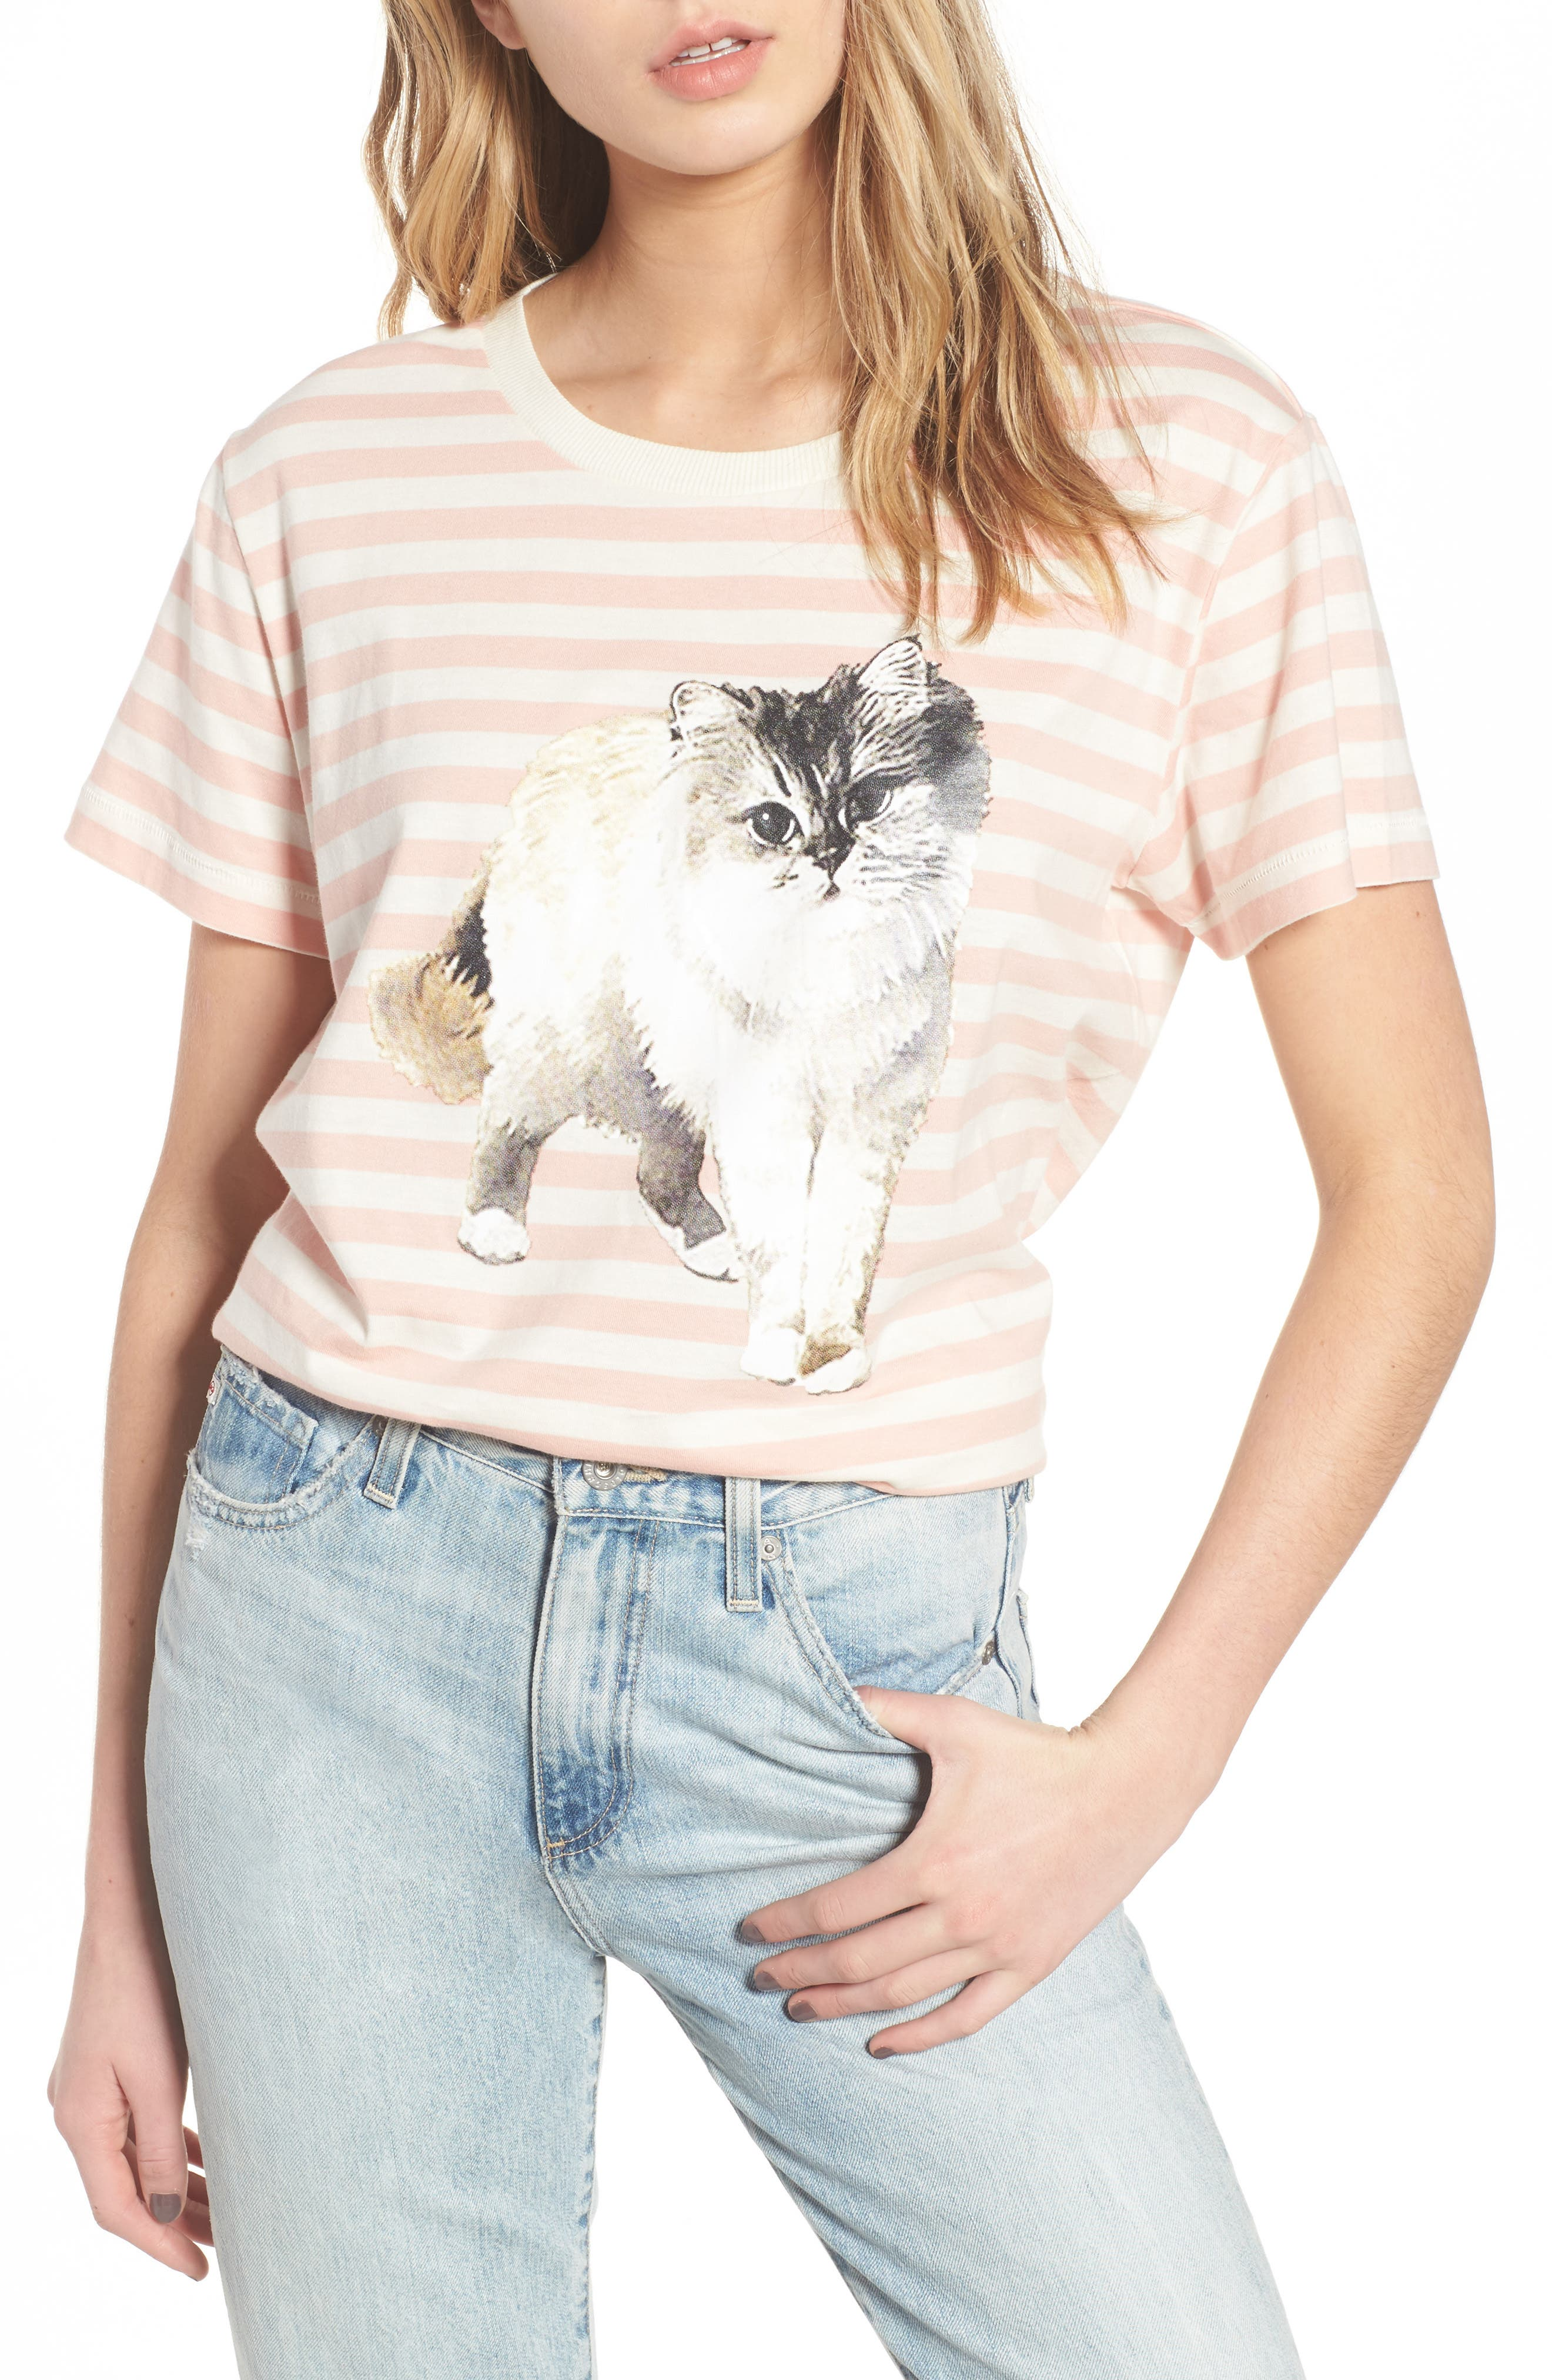 Timtomt Tee,                             Main thumbnail 1, color,                             Pink